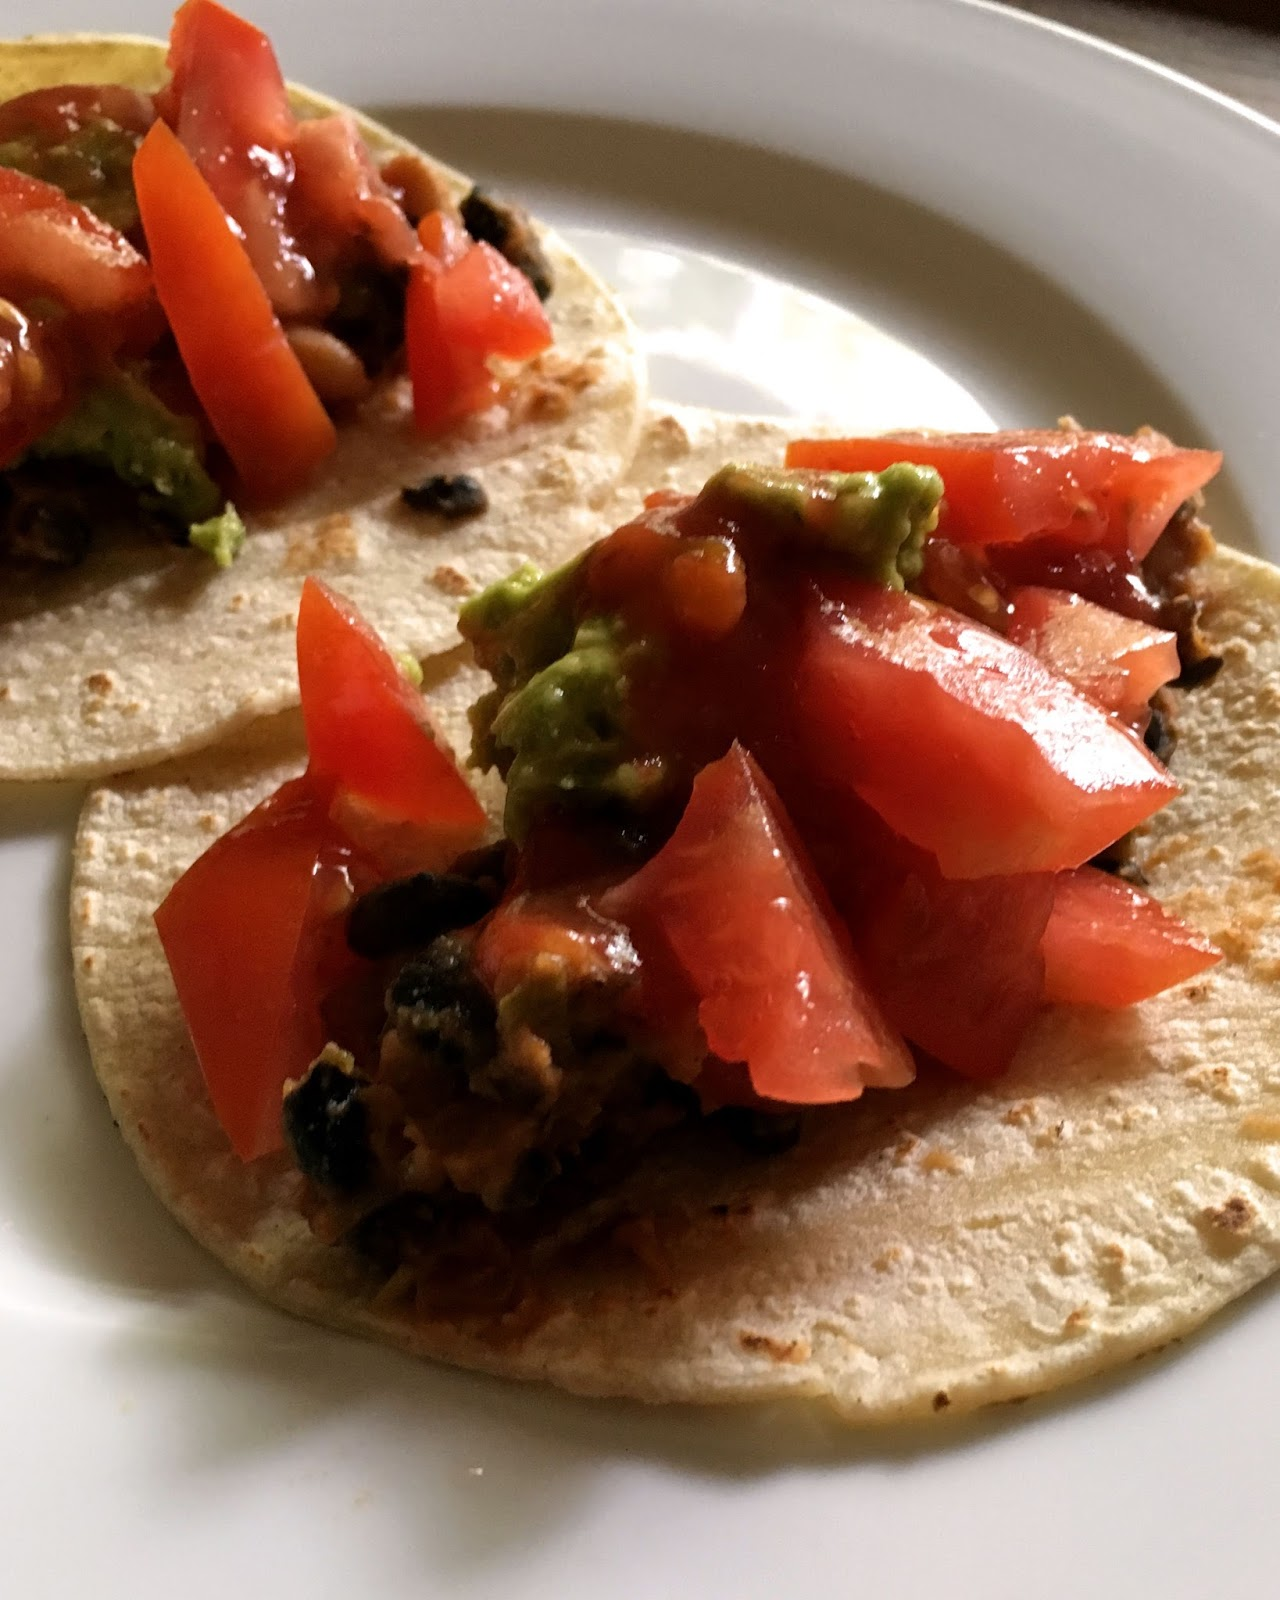 Sublimely Simple : Delicious Black Bean and Guacamole Tacos!